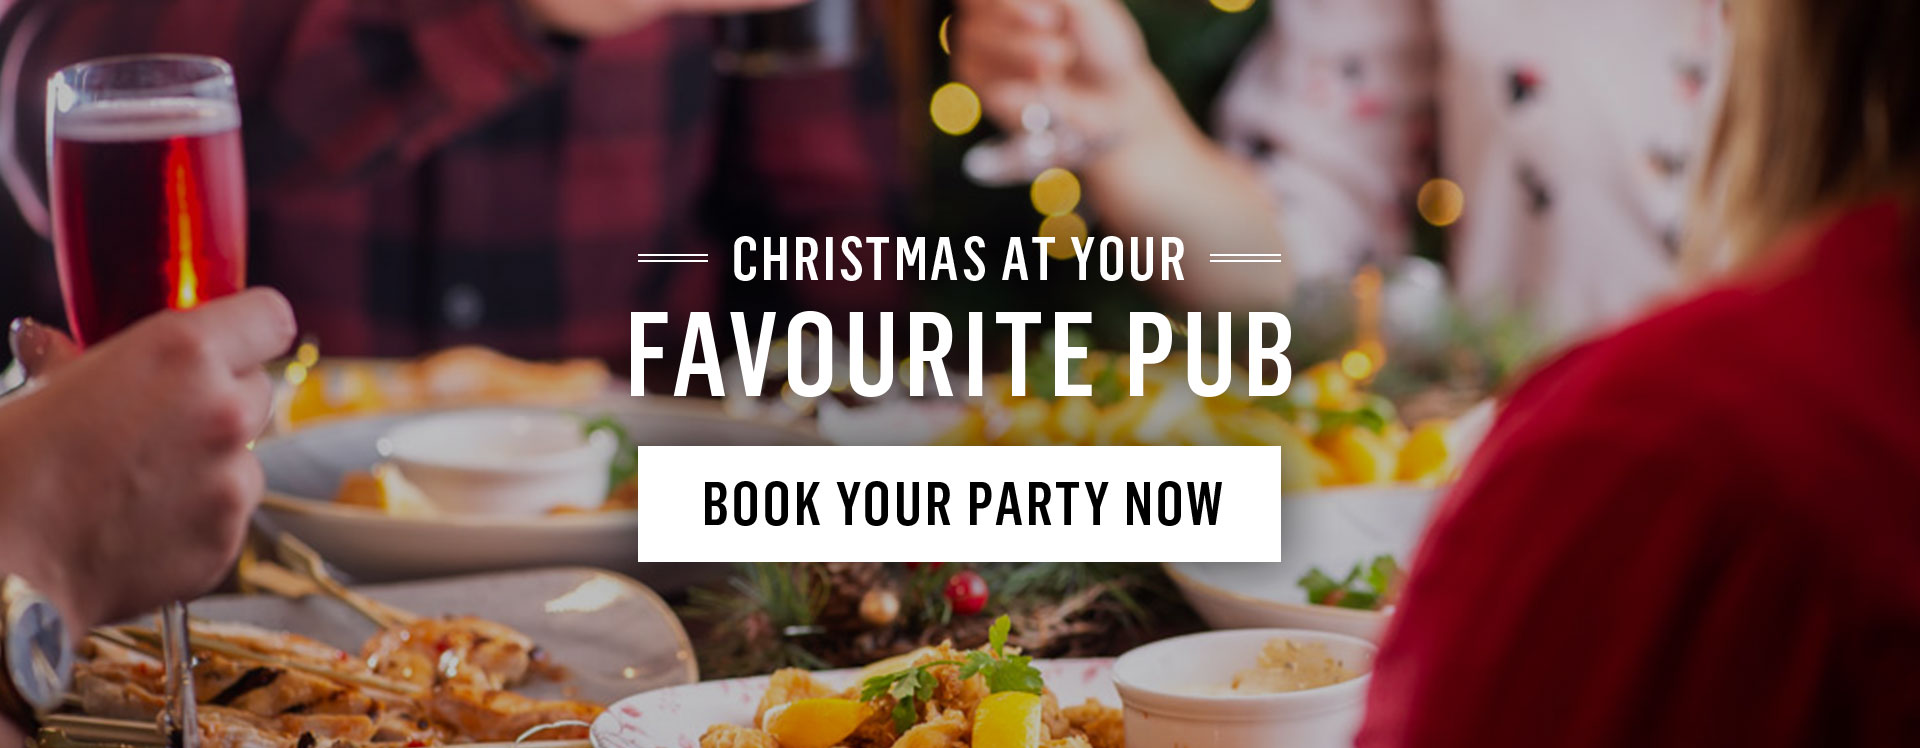 christmaspartybookings-banner.jpg